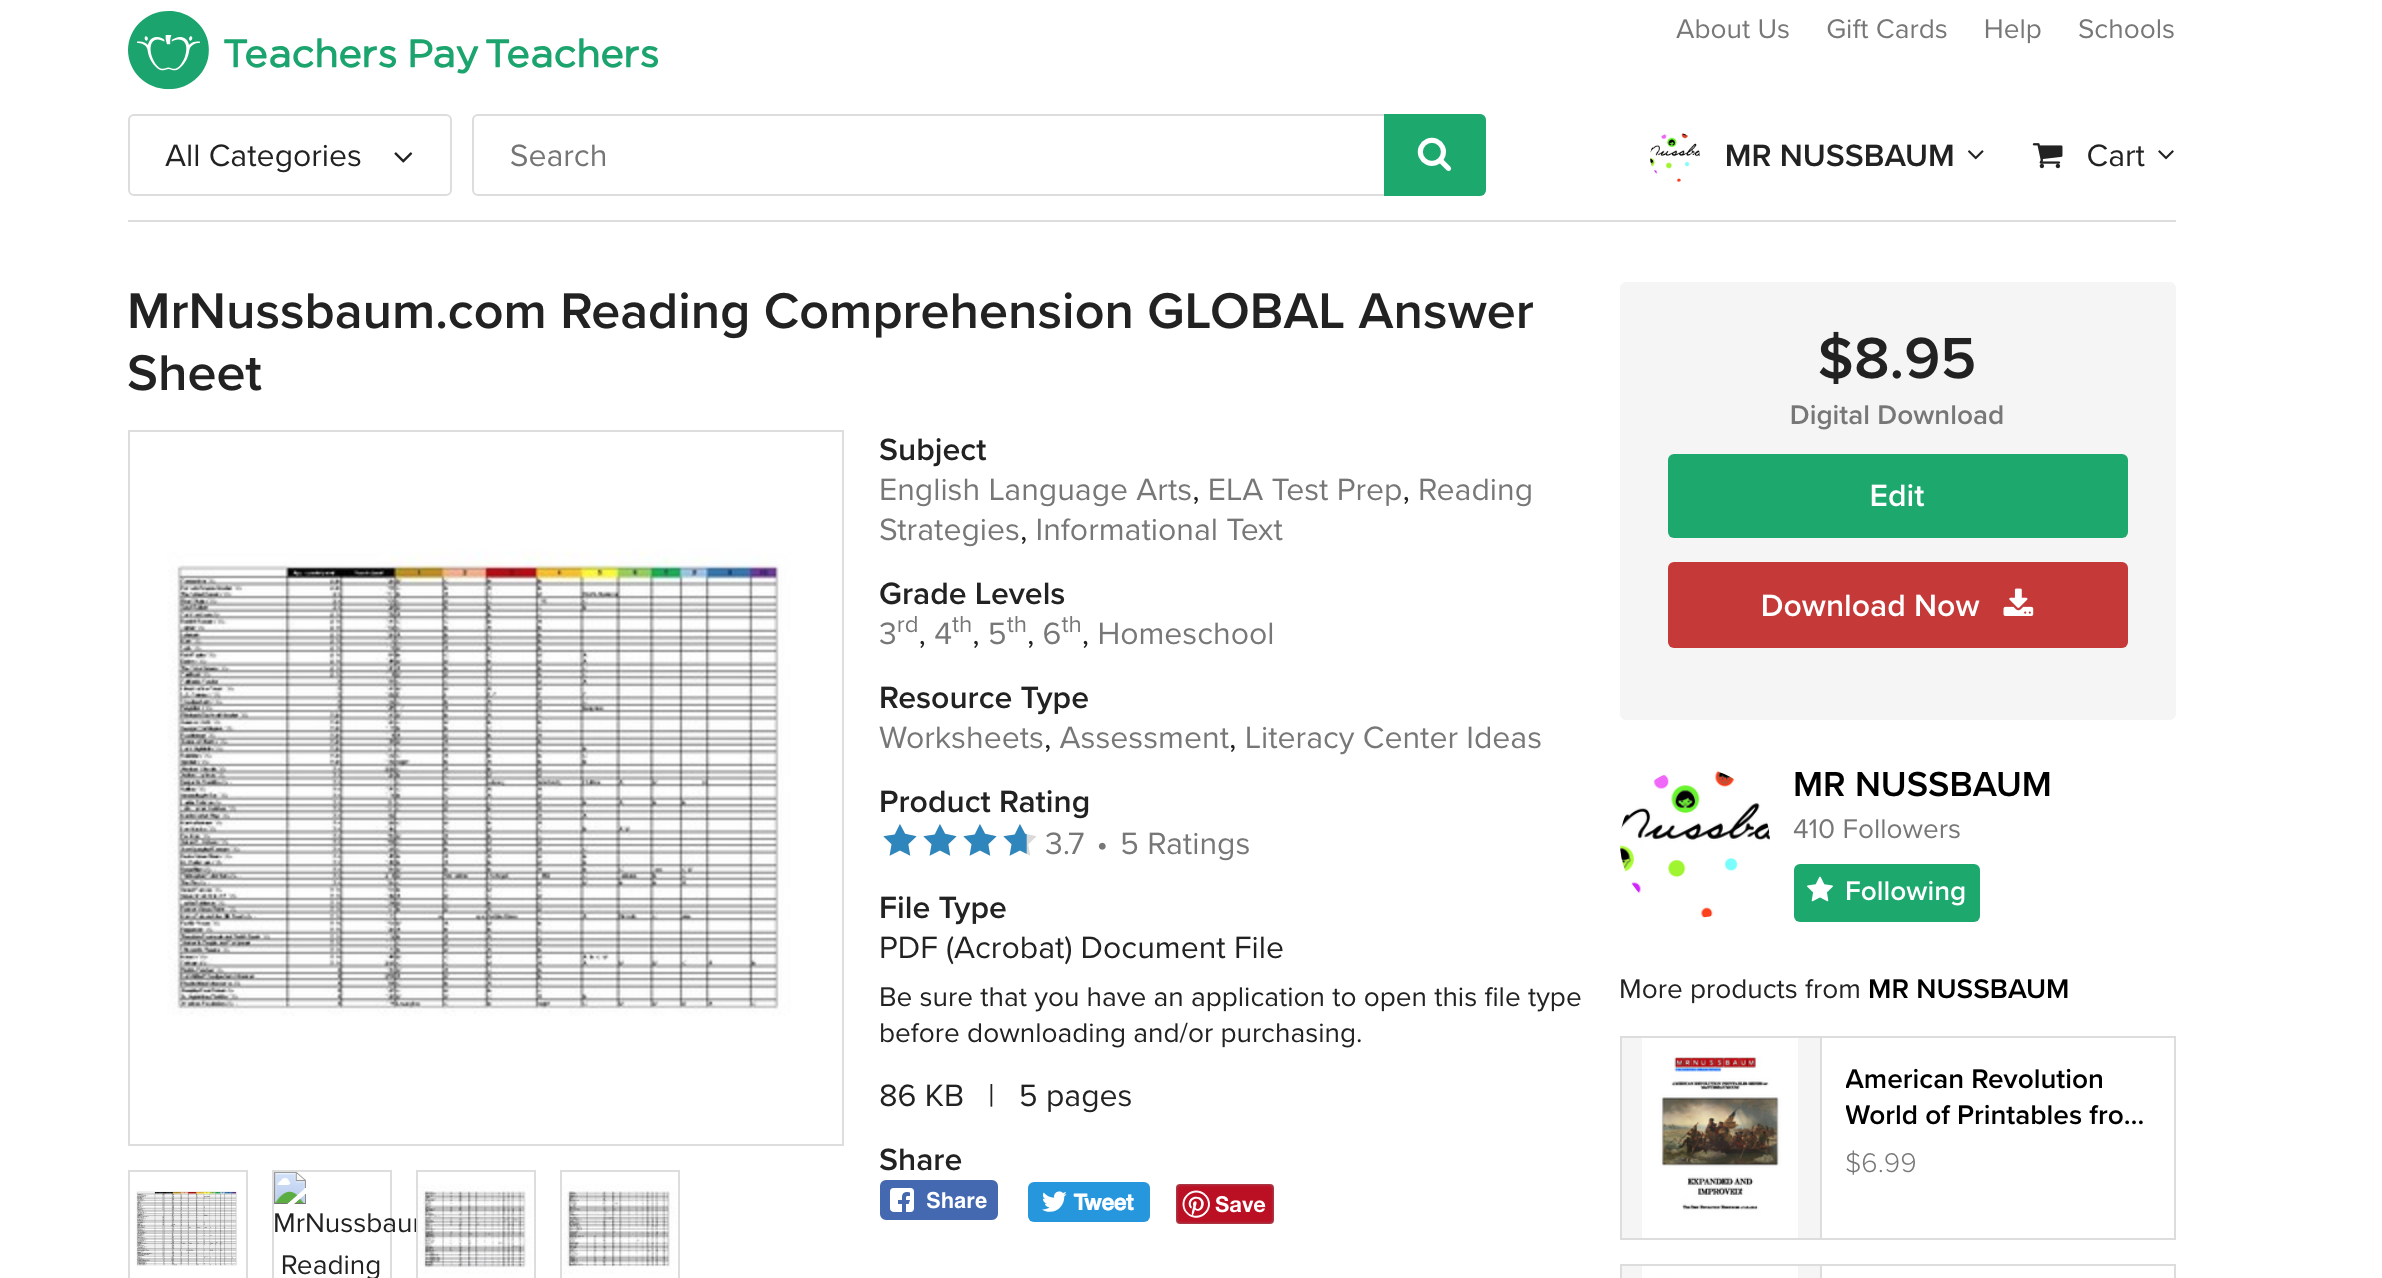 The Global Answer Sheet For All Mrnussbaum Printable Comprehension Activities Reading Comprehension Comprehension Comprehension Activities [ 1278 x 2382 Pixel ]